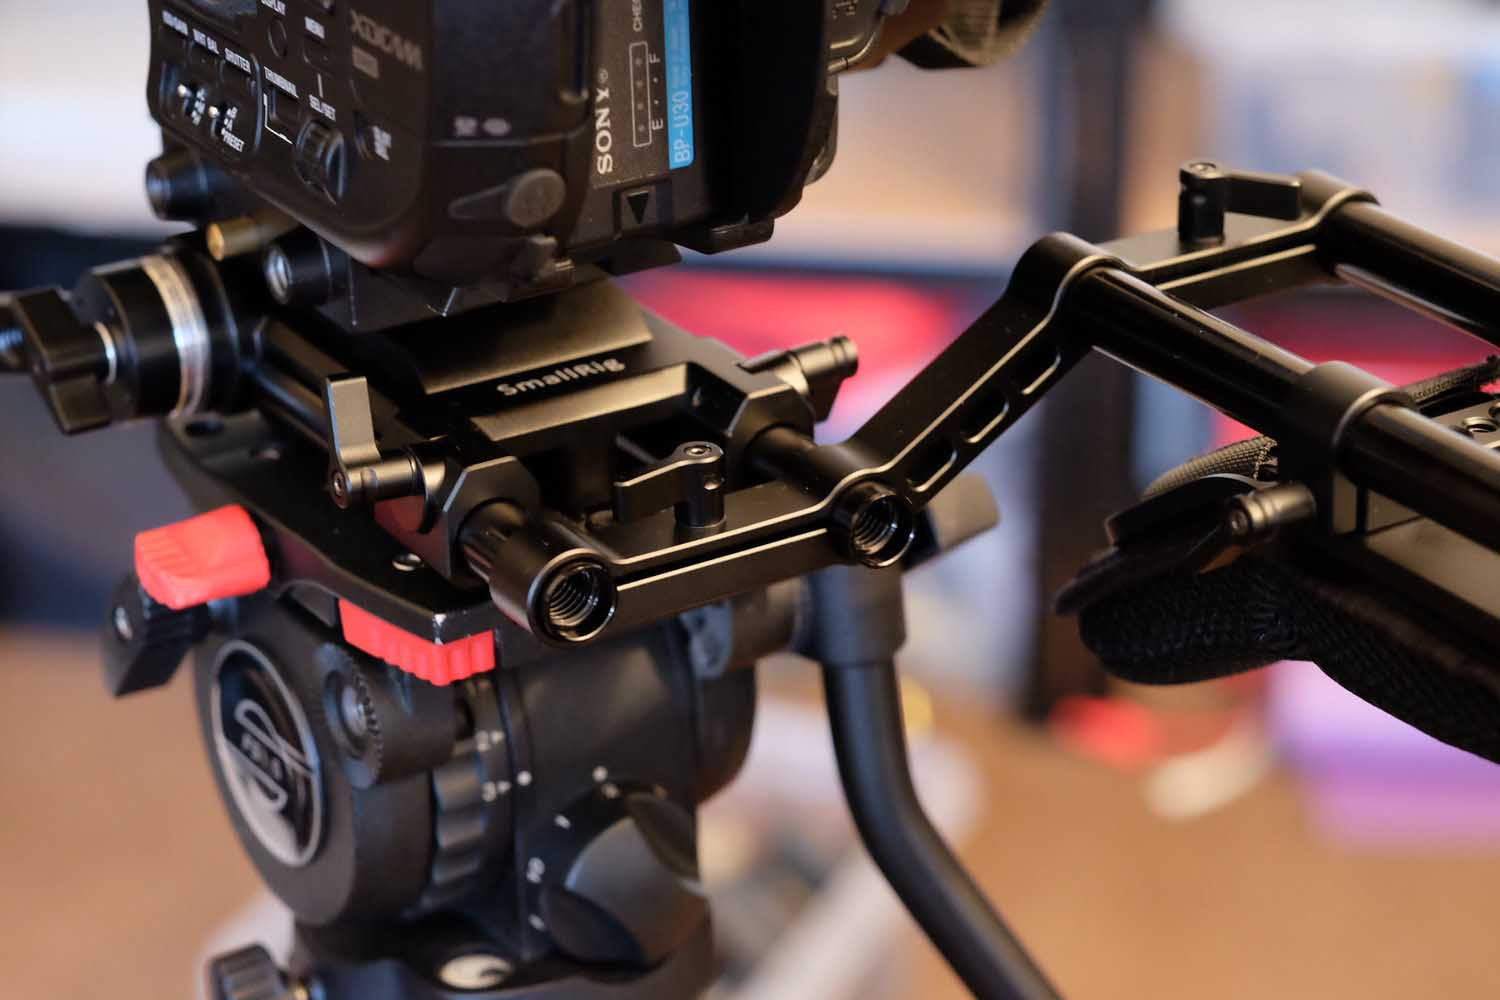 The Sony FS5 Shoulder Rig